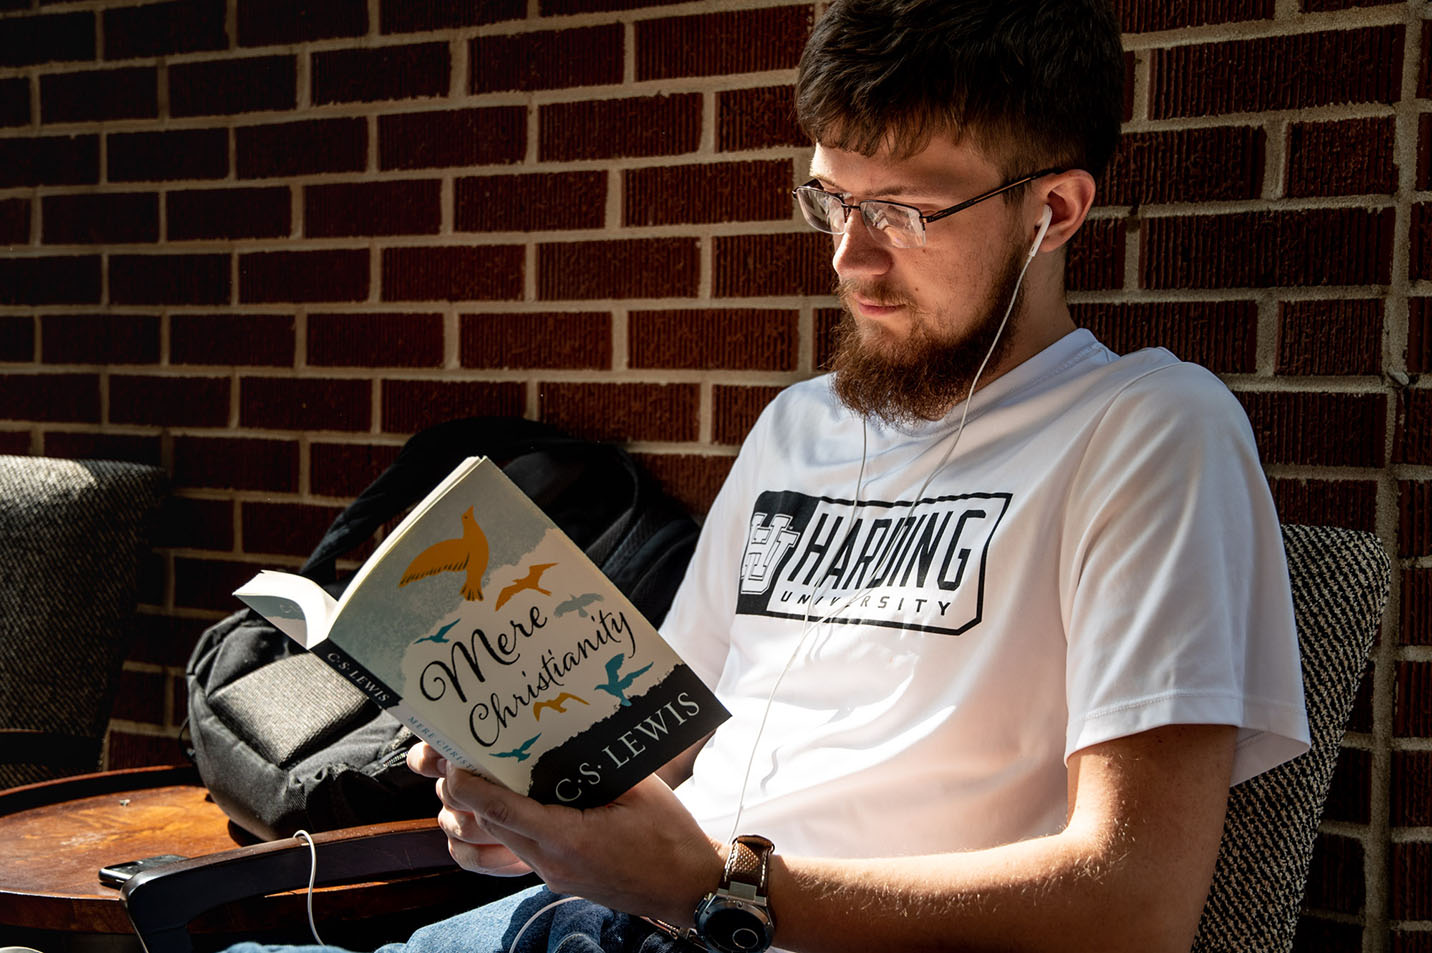 This is a photo of a student reading Mere Christianity.